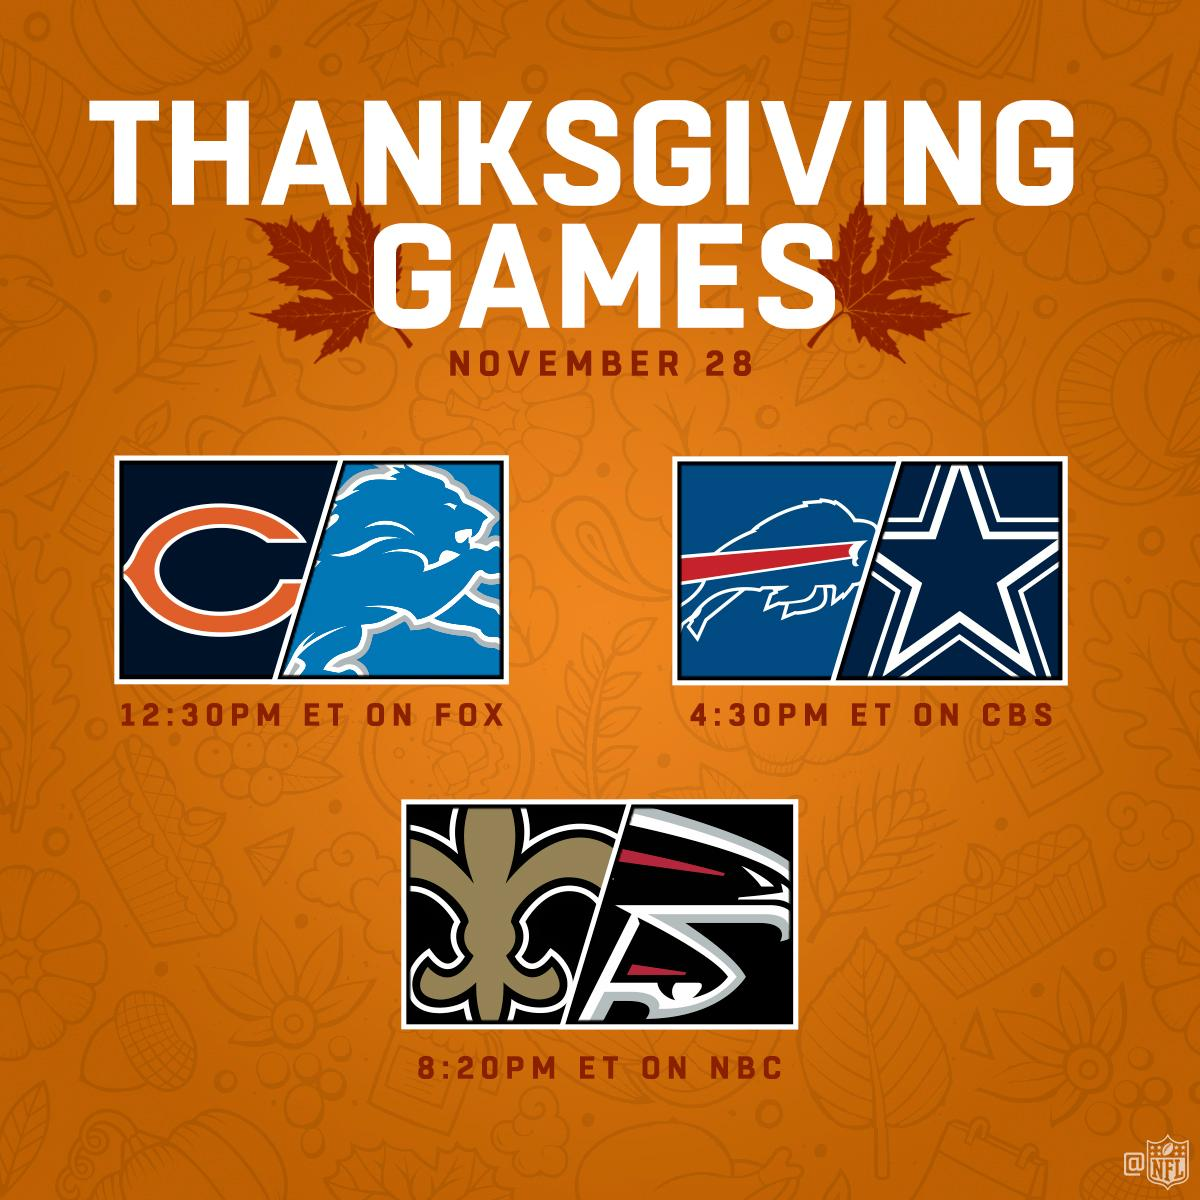 thanksgiving 2019 football games image